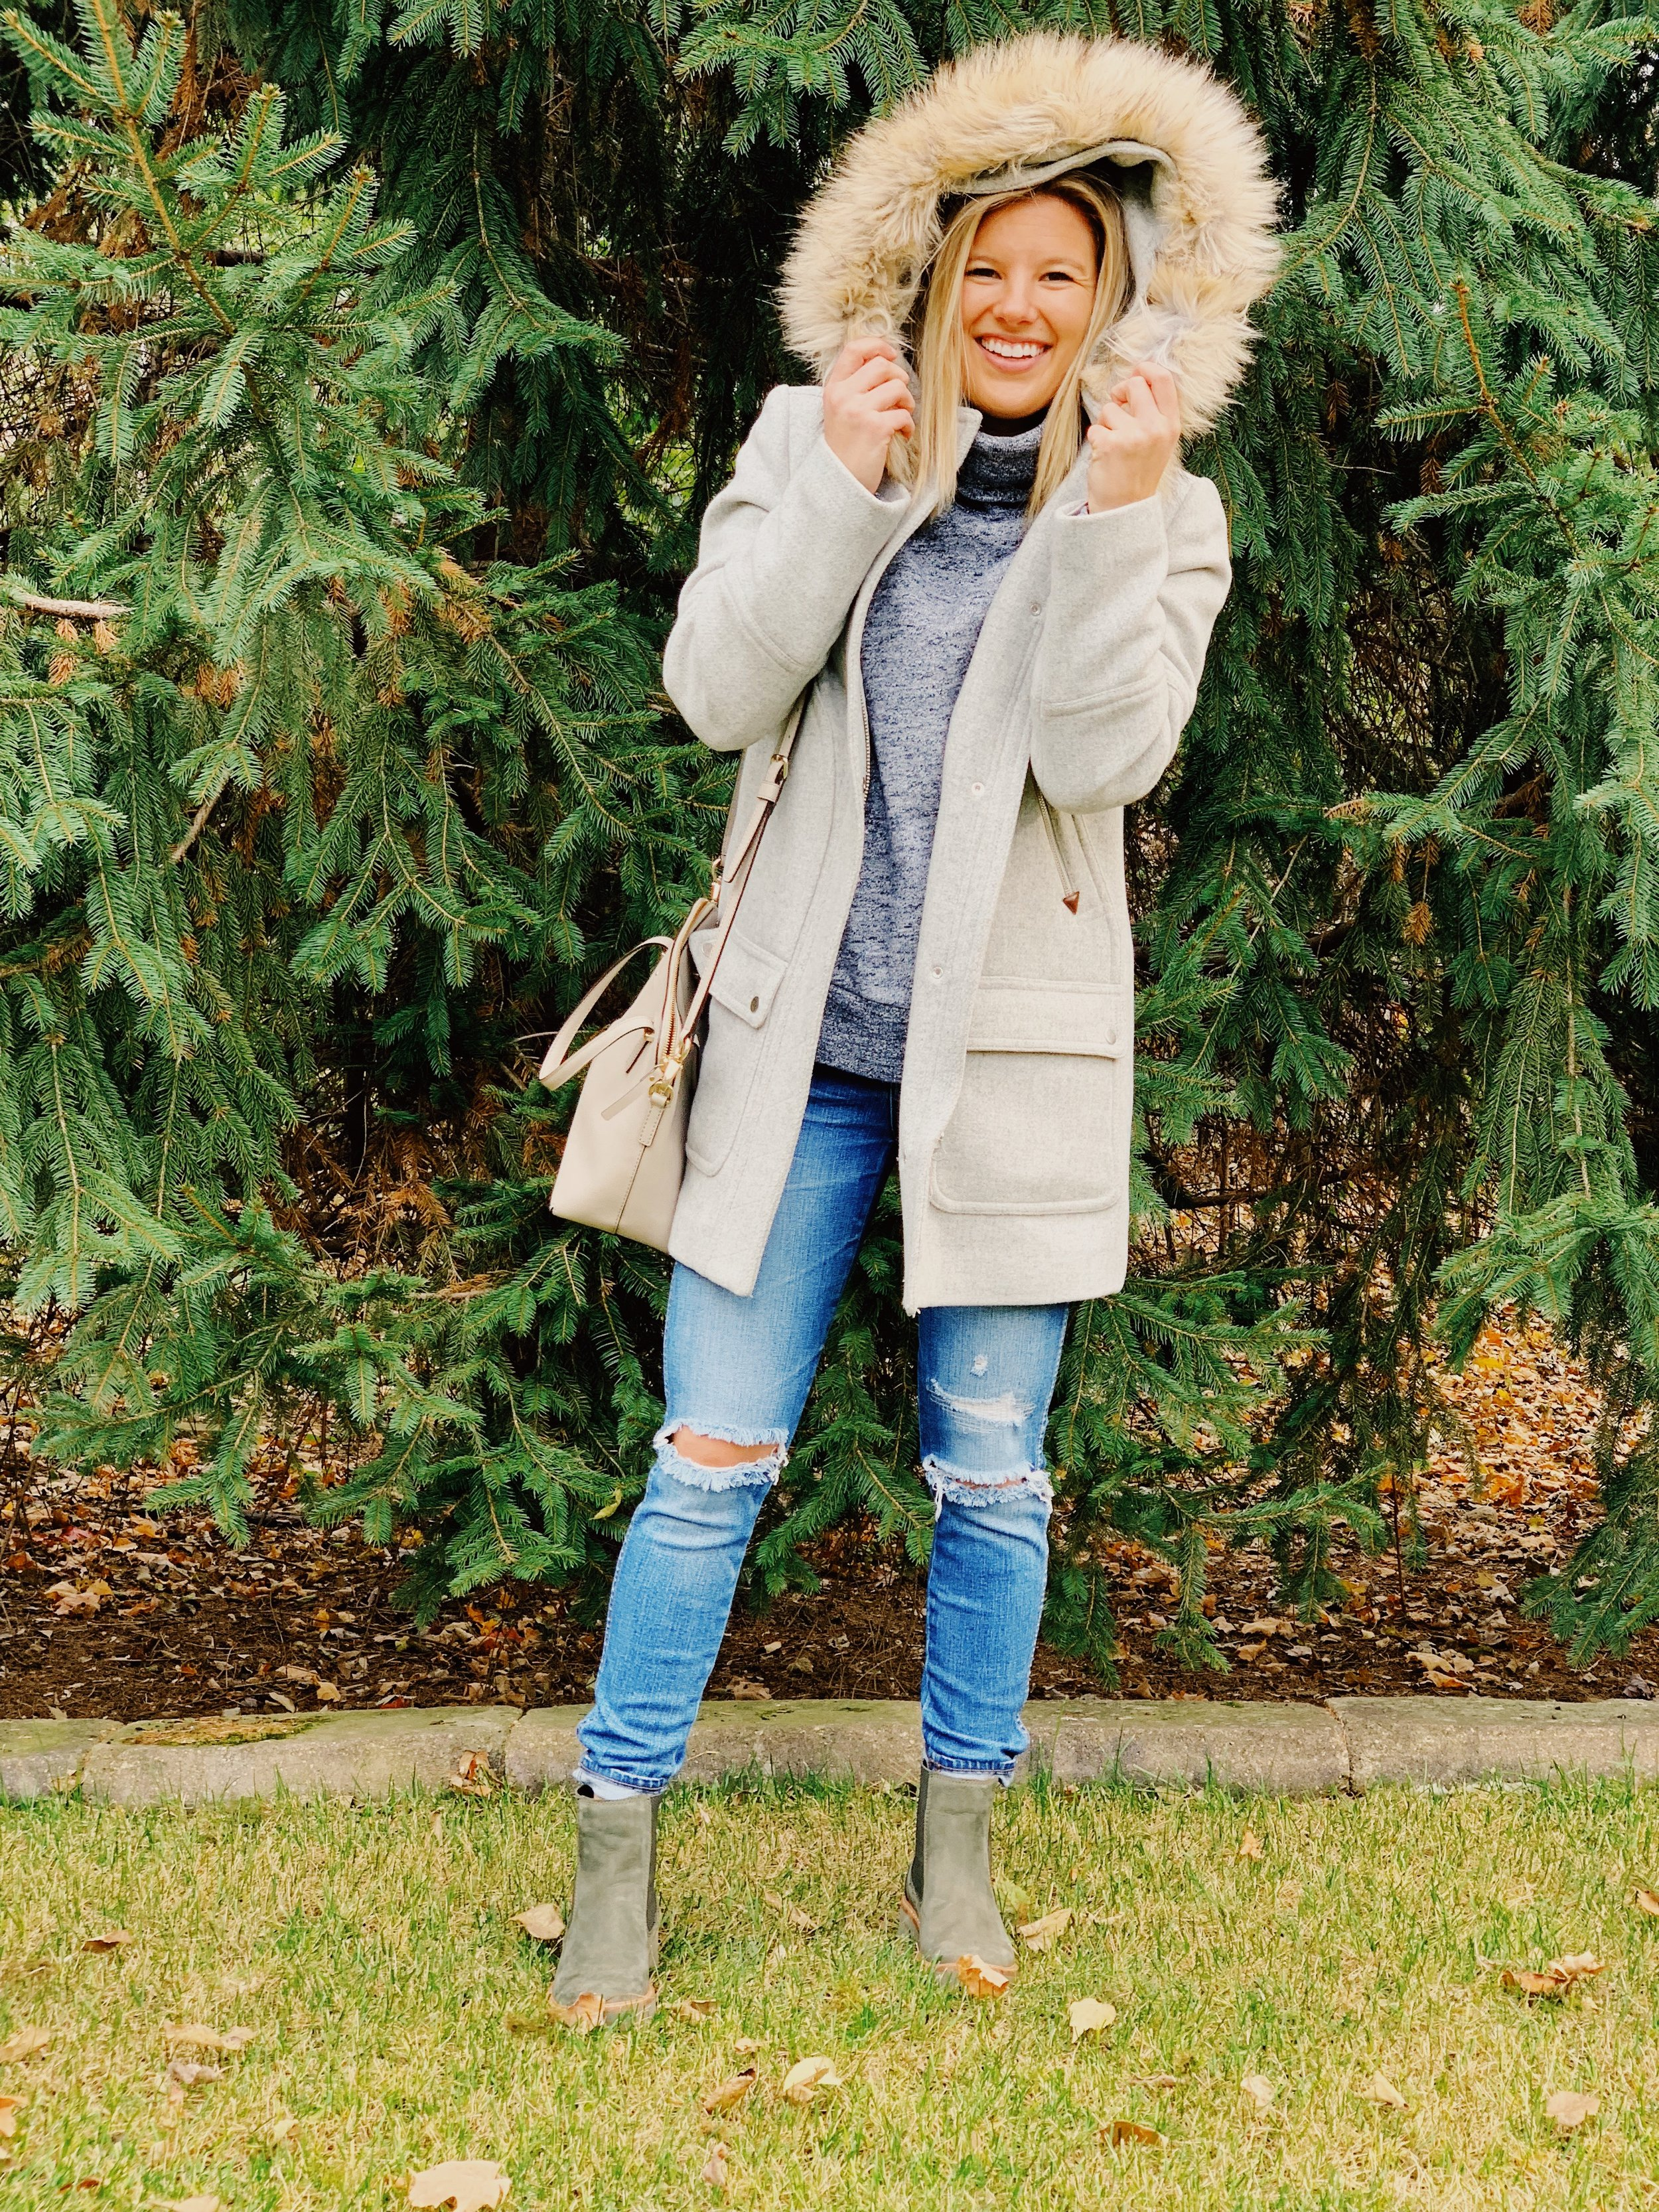 Outfit Details: Coat: JCrew, Sweatshirt: Madewell, Jeans: Madewell, Boots:  Timerland , Purse: Kate Spade